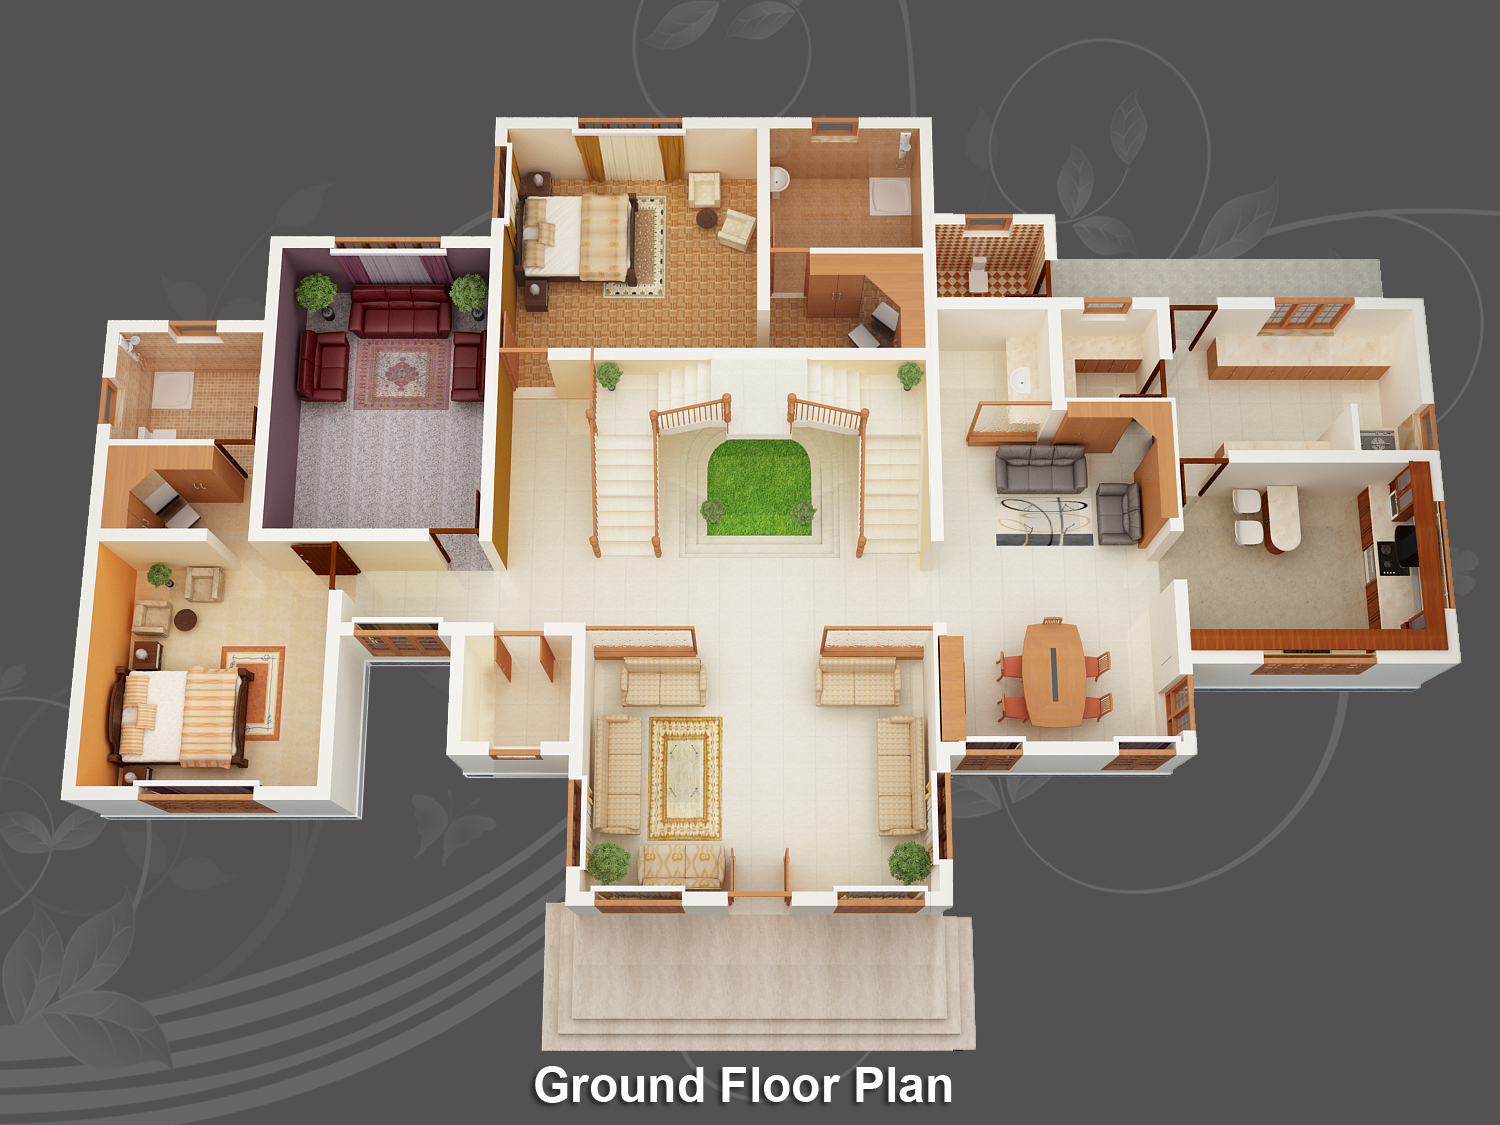 Evens construction pvt ltd 3d house plan 20 05 2011 Building layout plan free